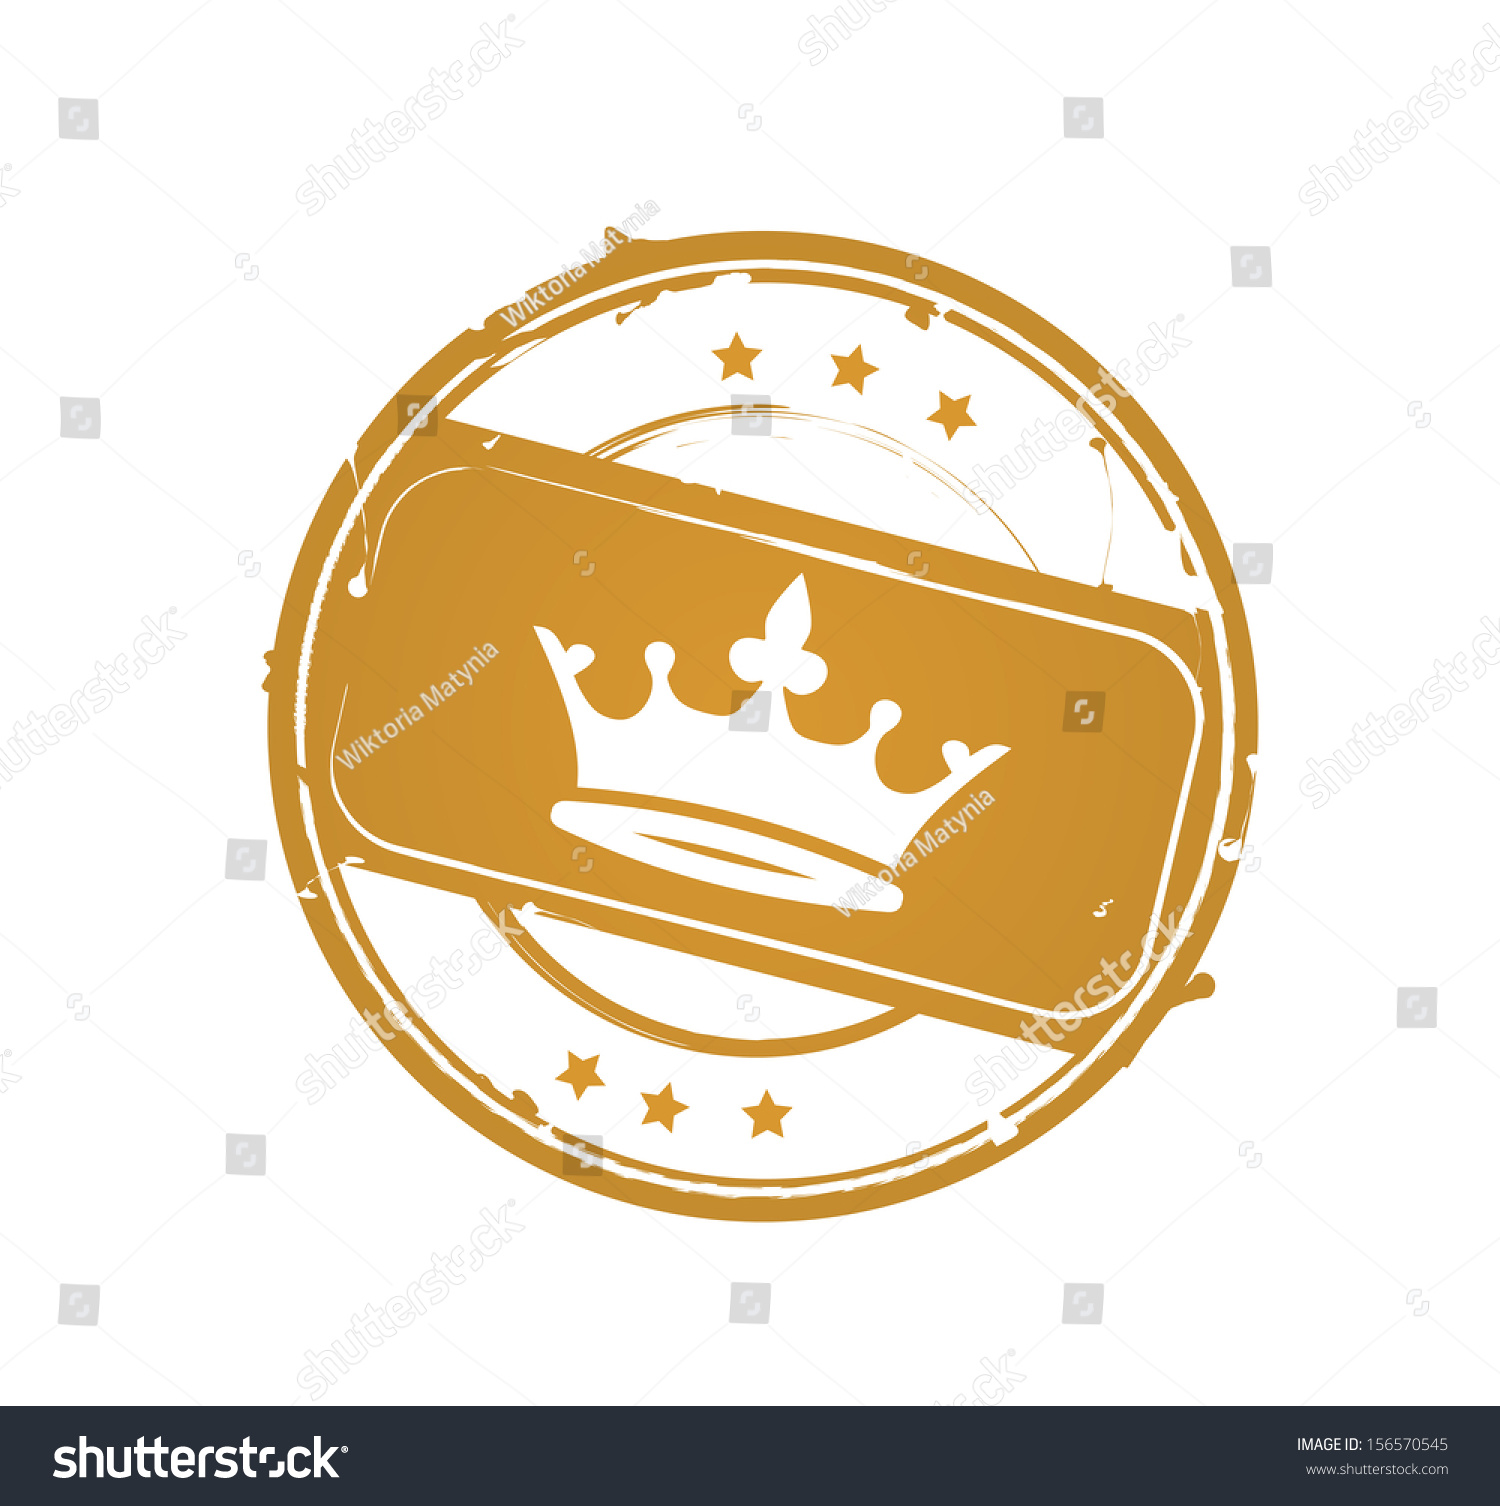 Retro Gold Royal Rubber Stamp With Crown VECTOR